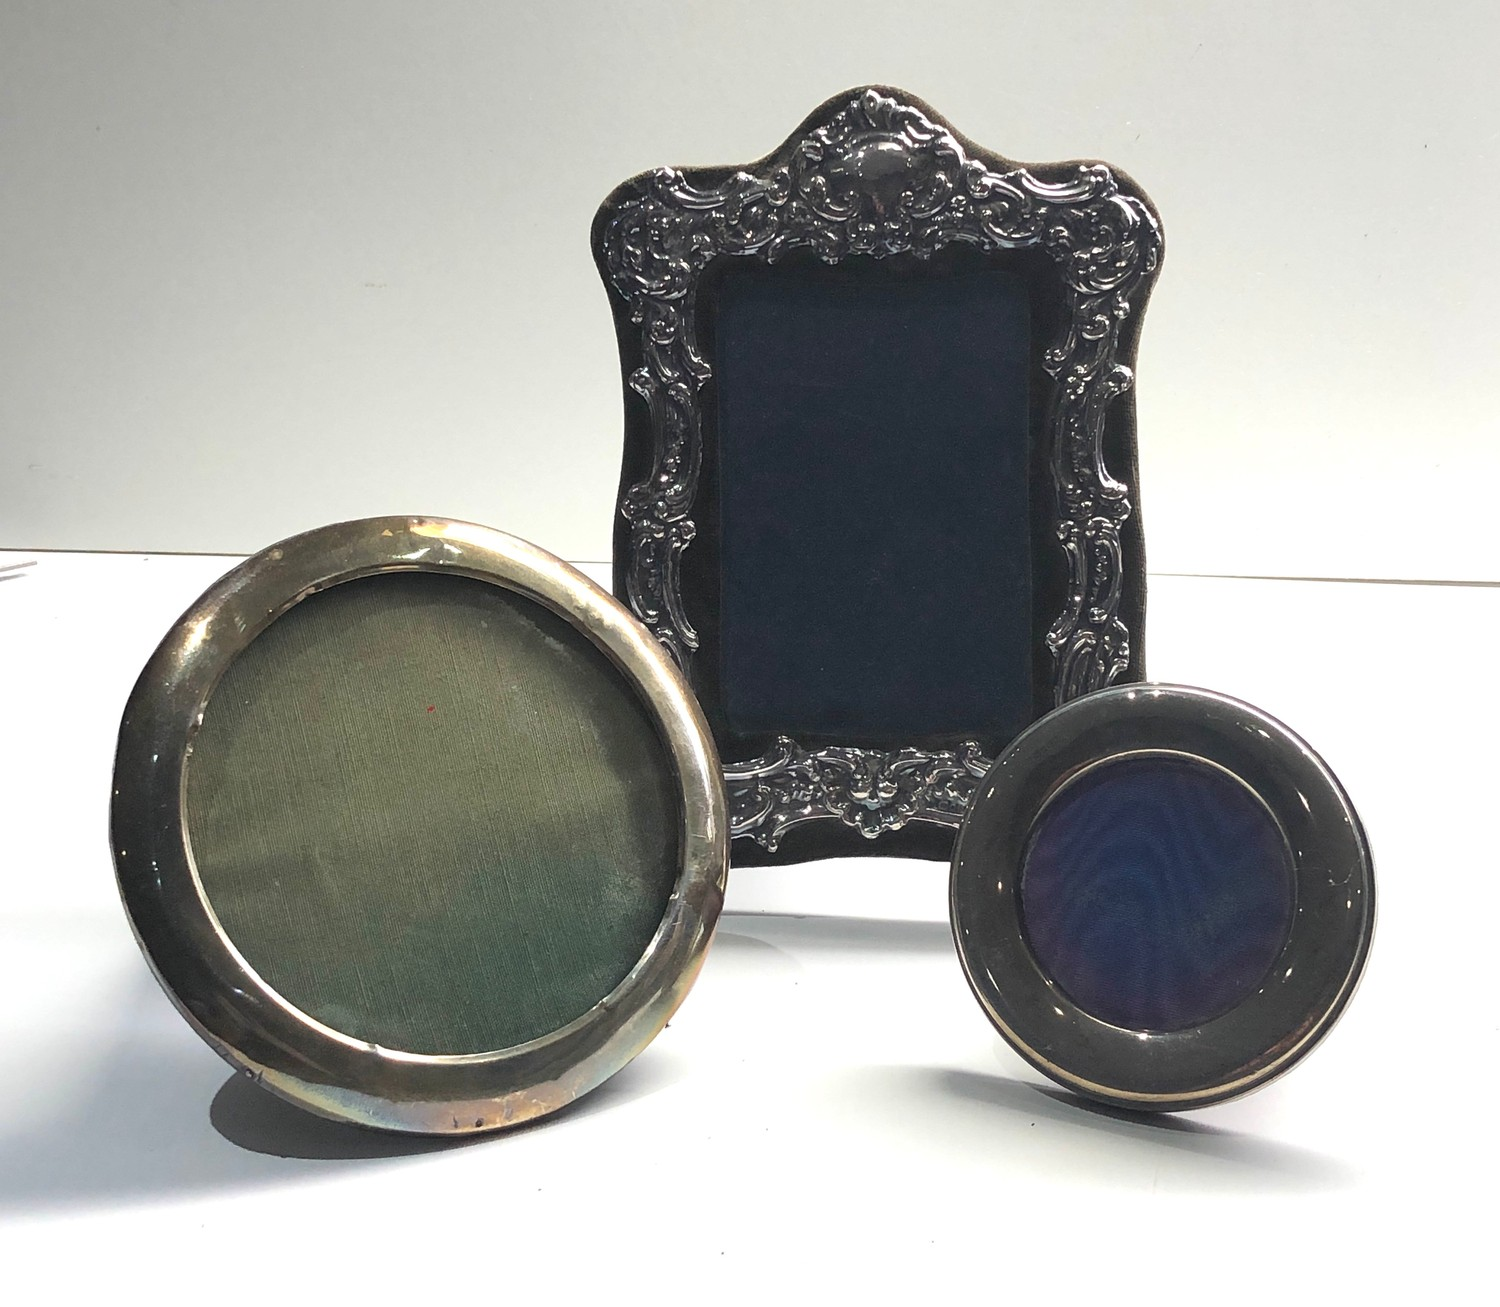 3 vintage silver picture frames largest measures approx 20cm by 16cm - Image 2 of 6